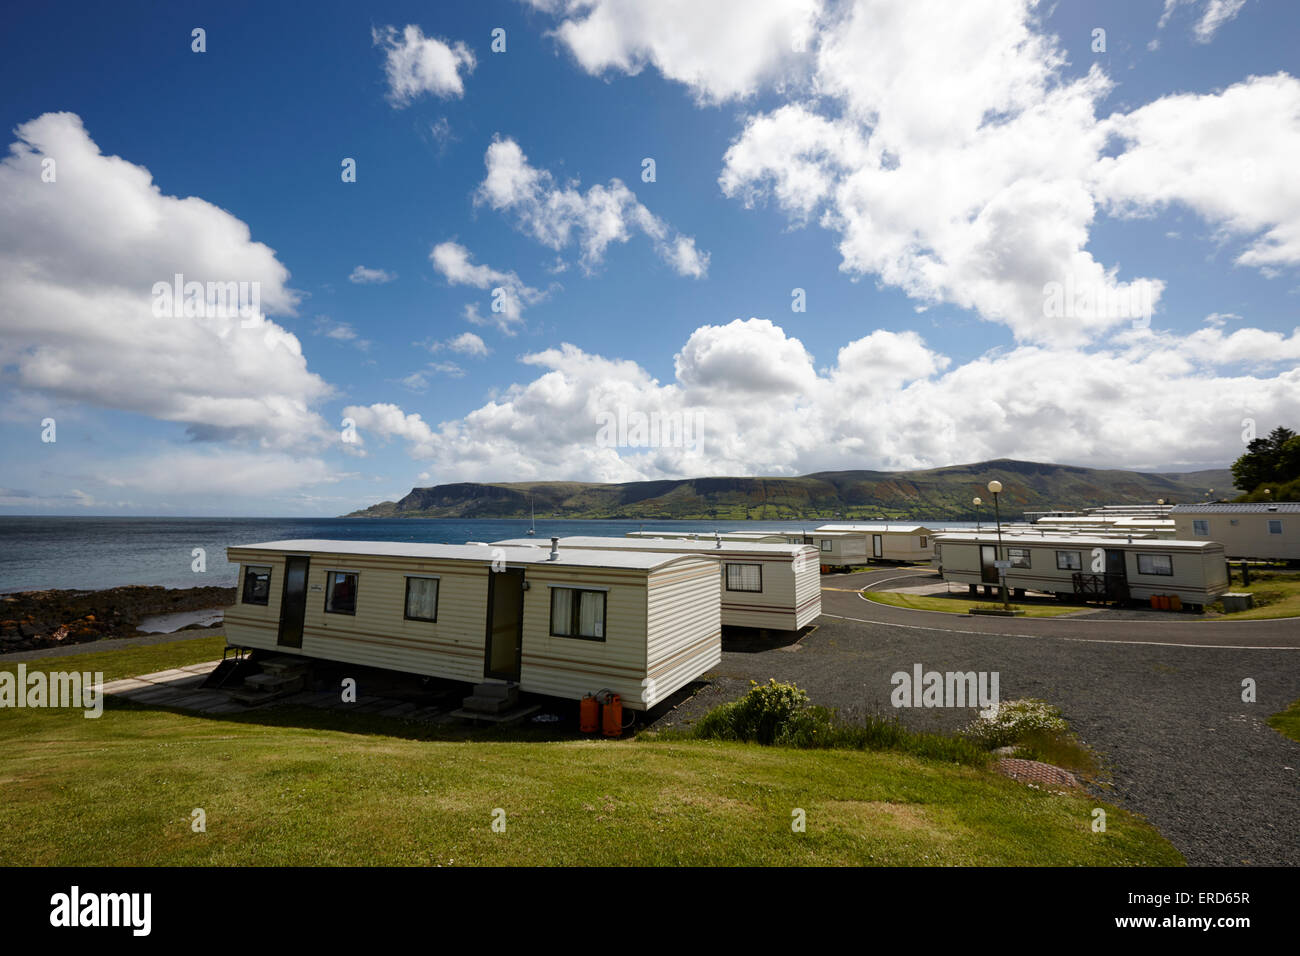 Mobile Static Caravans On Caravan Holiday Park Cushendall County